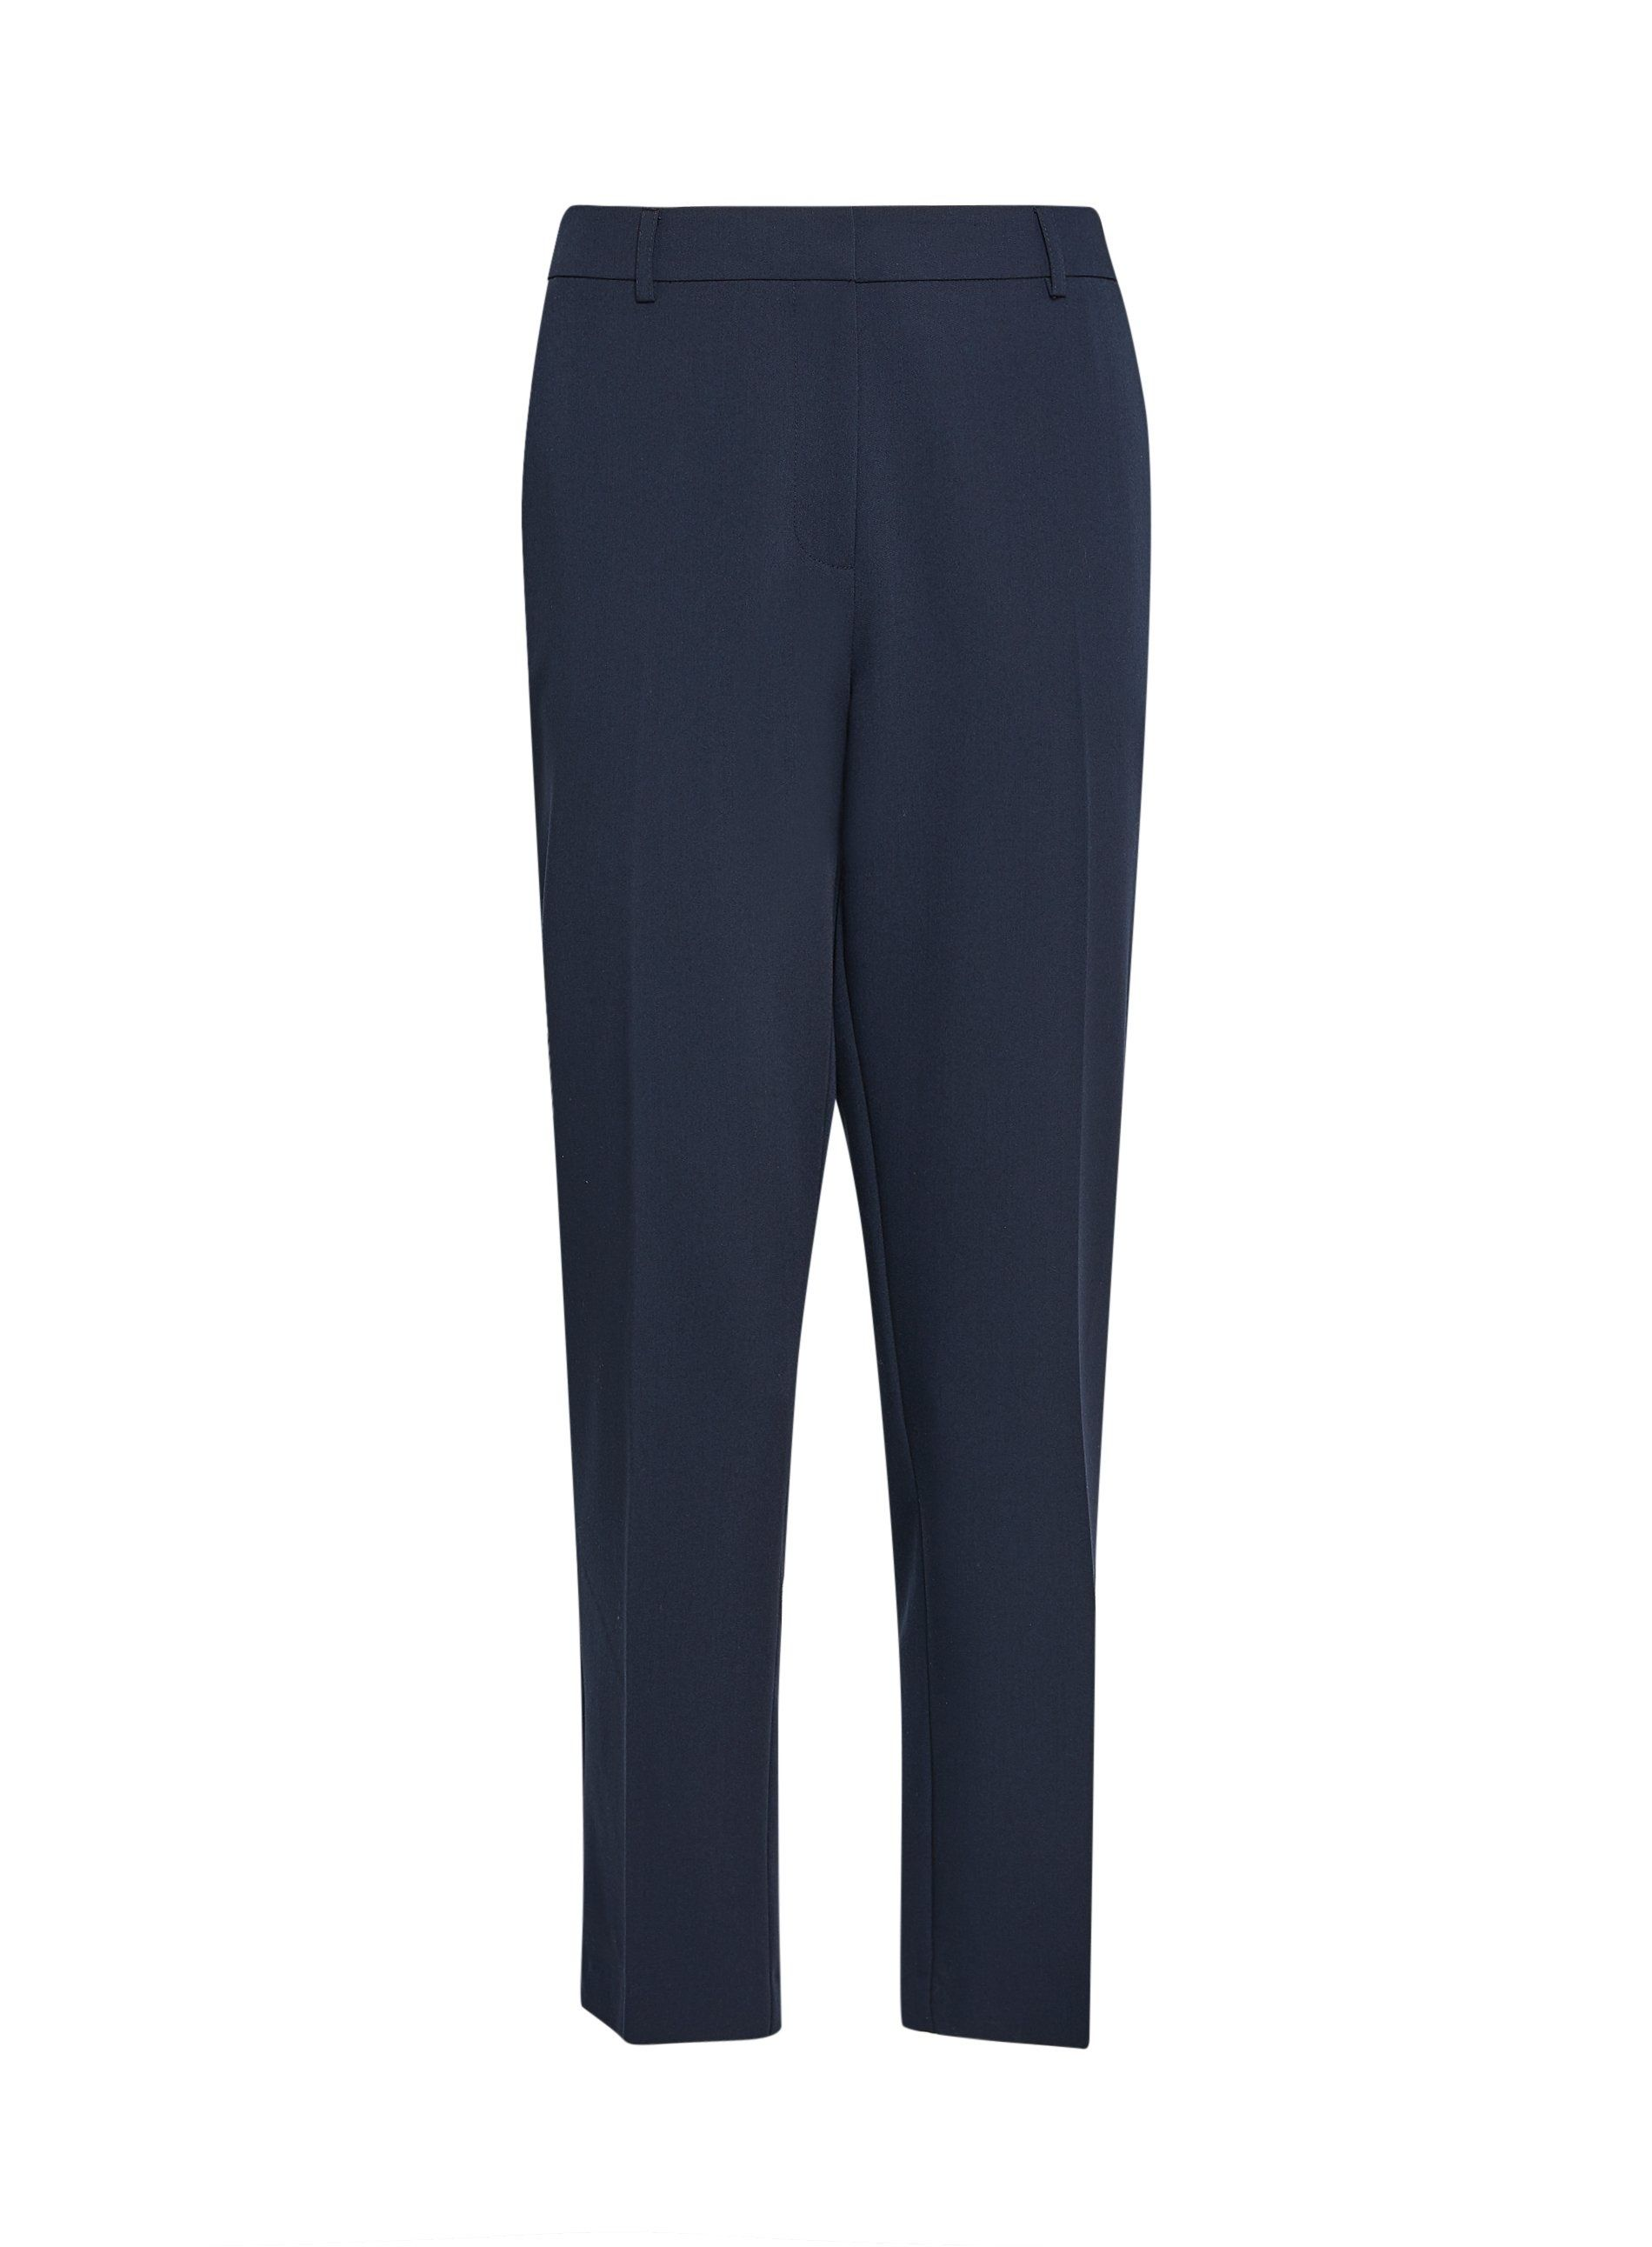 Dorothy Perkins Womens Navy Ankle Grazer Trousers Casual Bottoms Pants Leggings